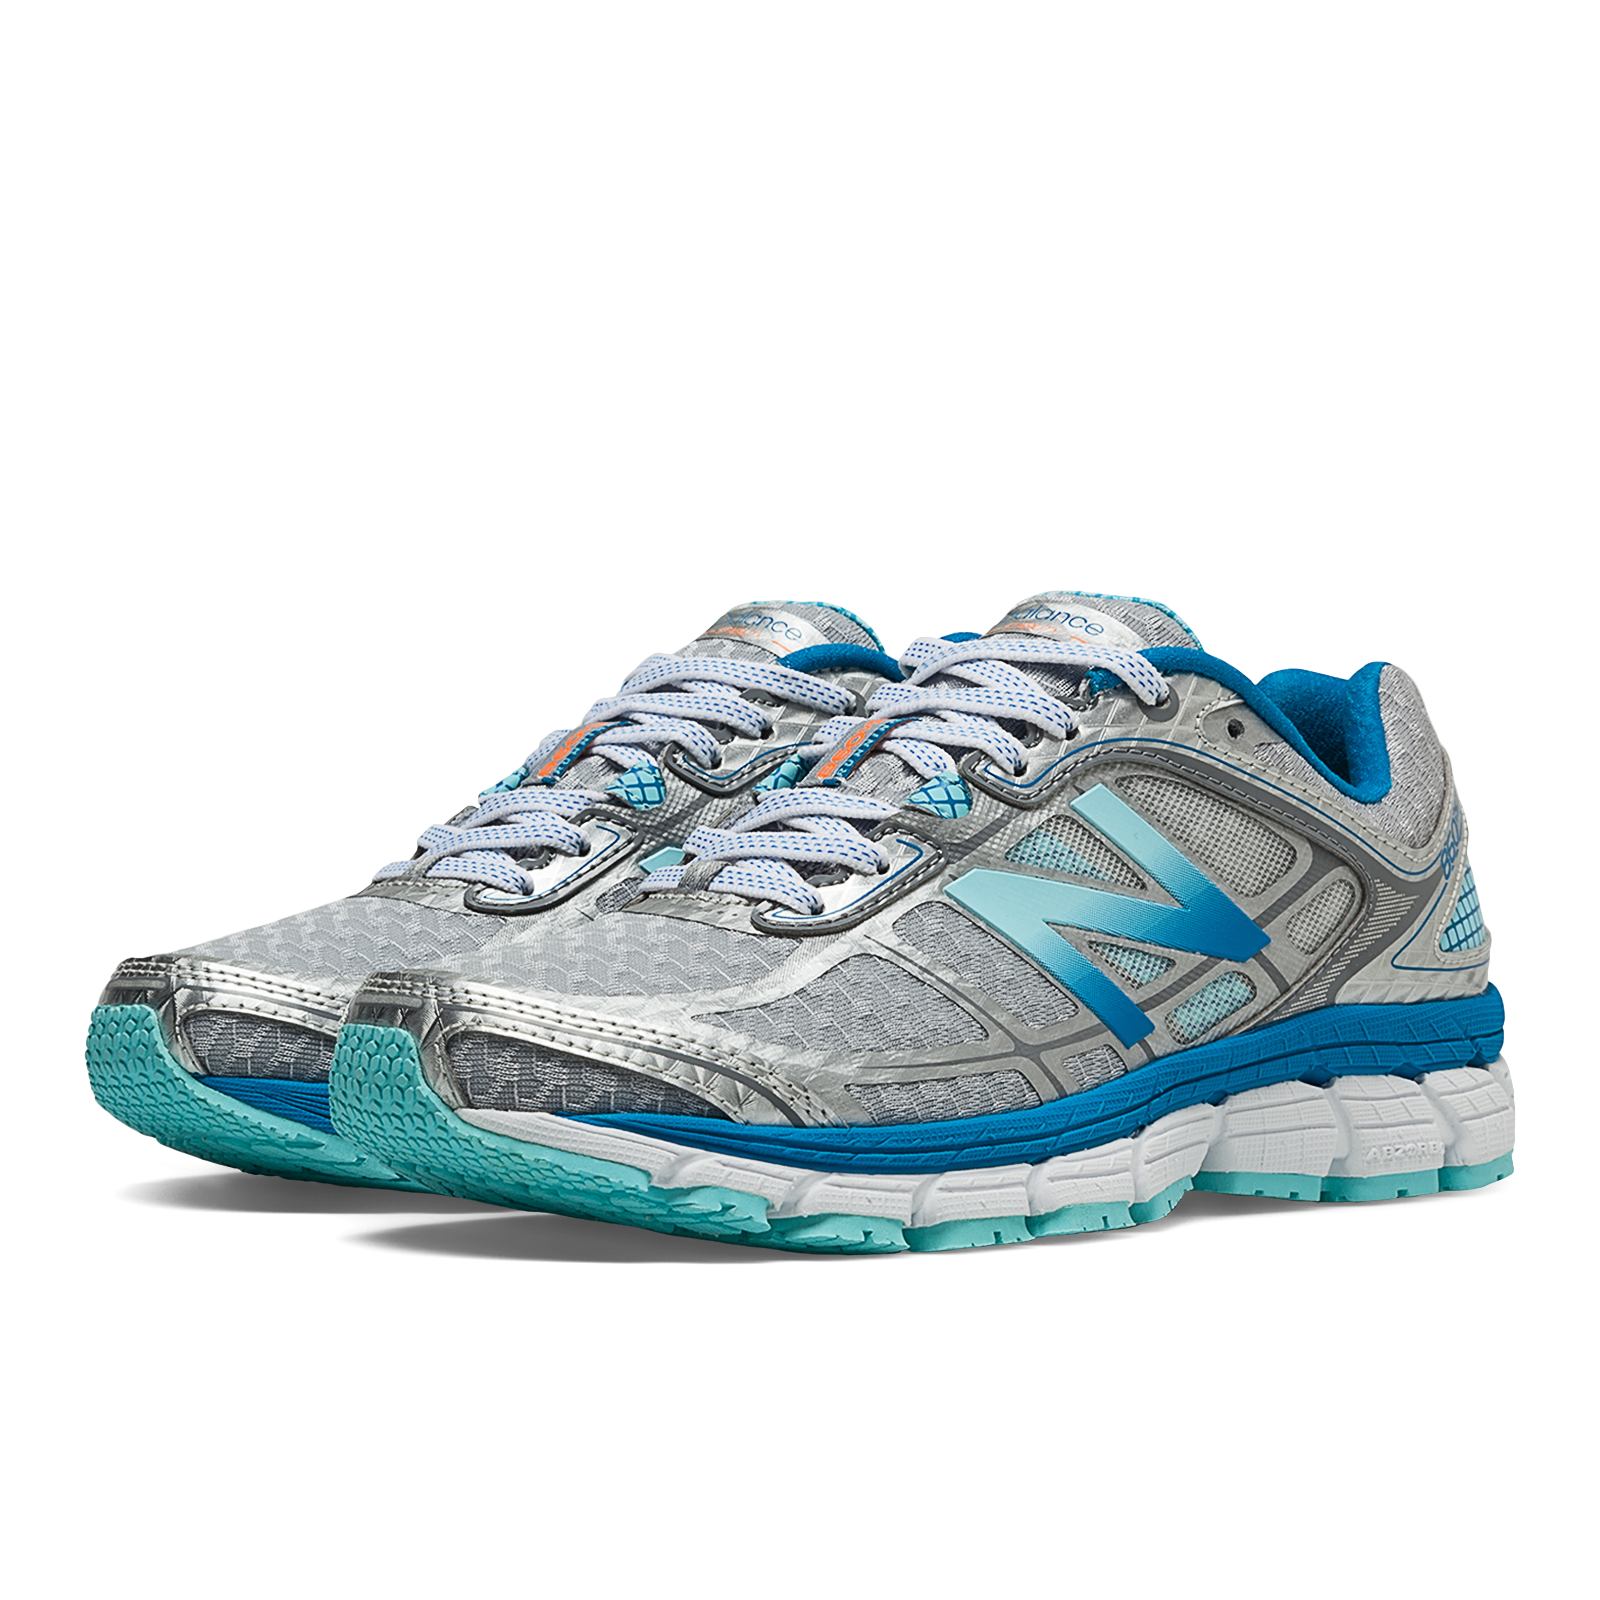 New Balance Lady 860 V5 B in Silver/Blue